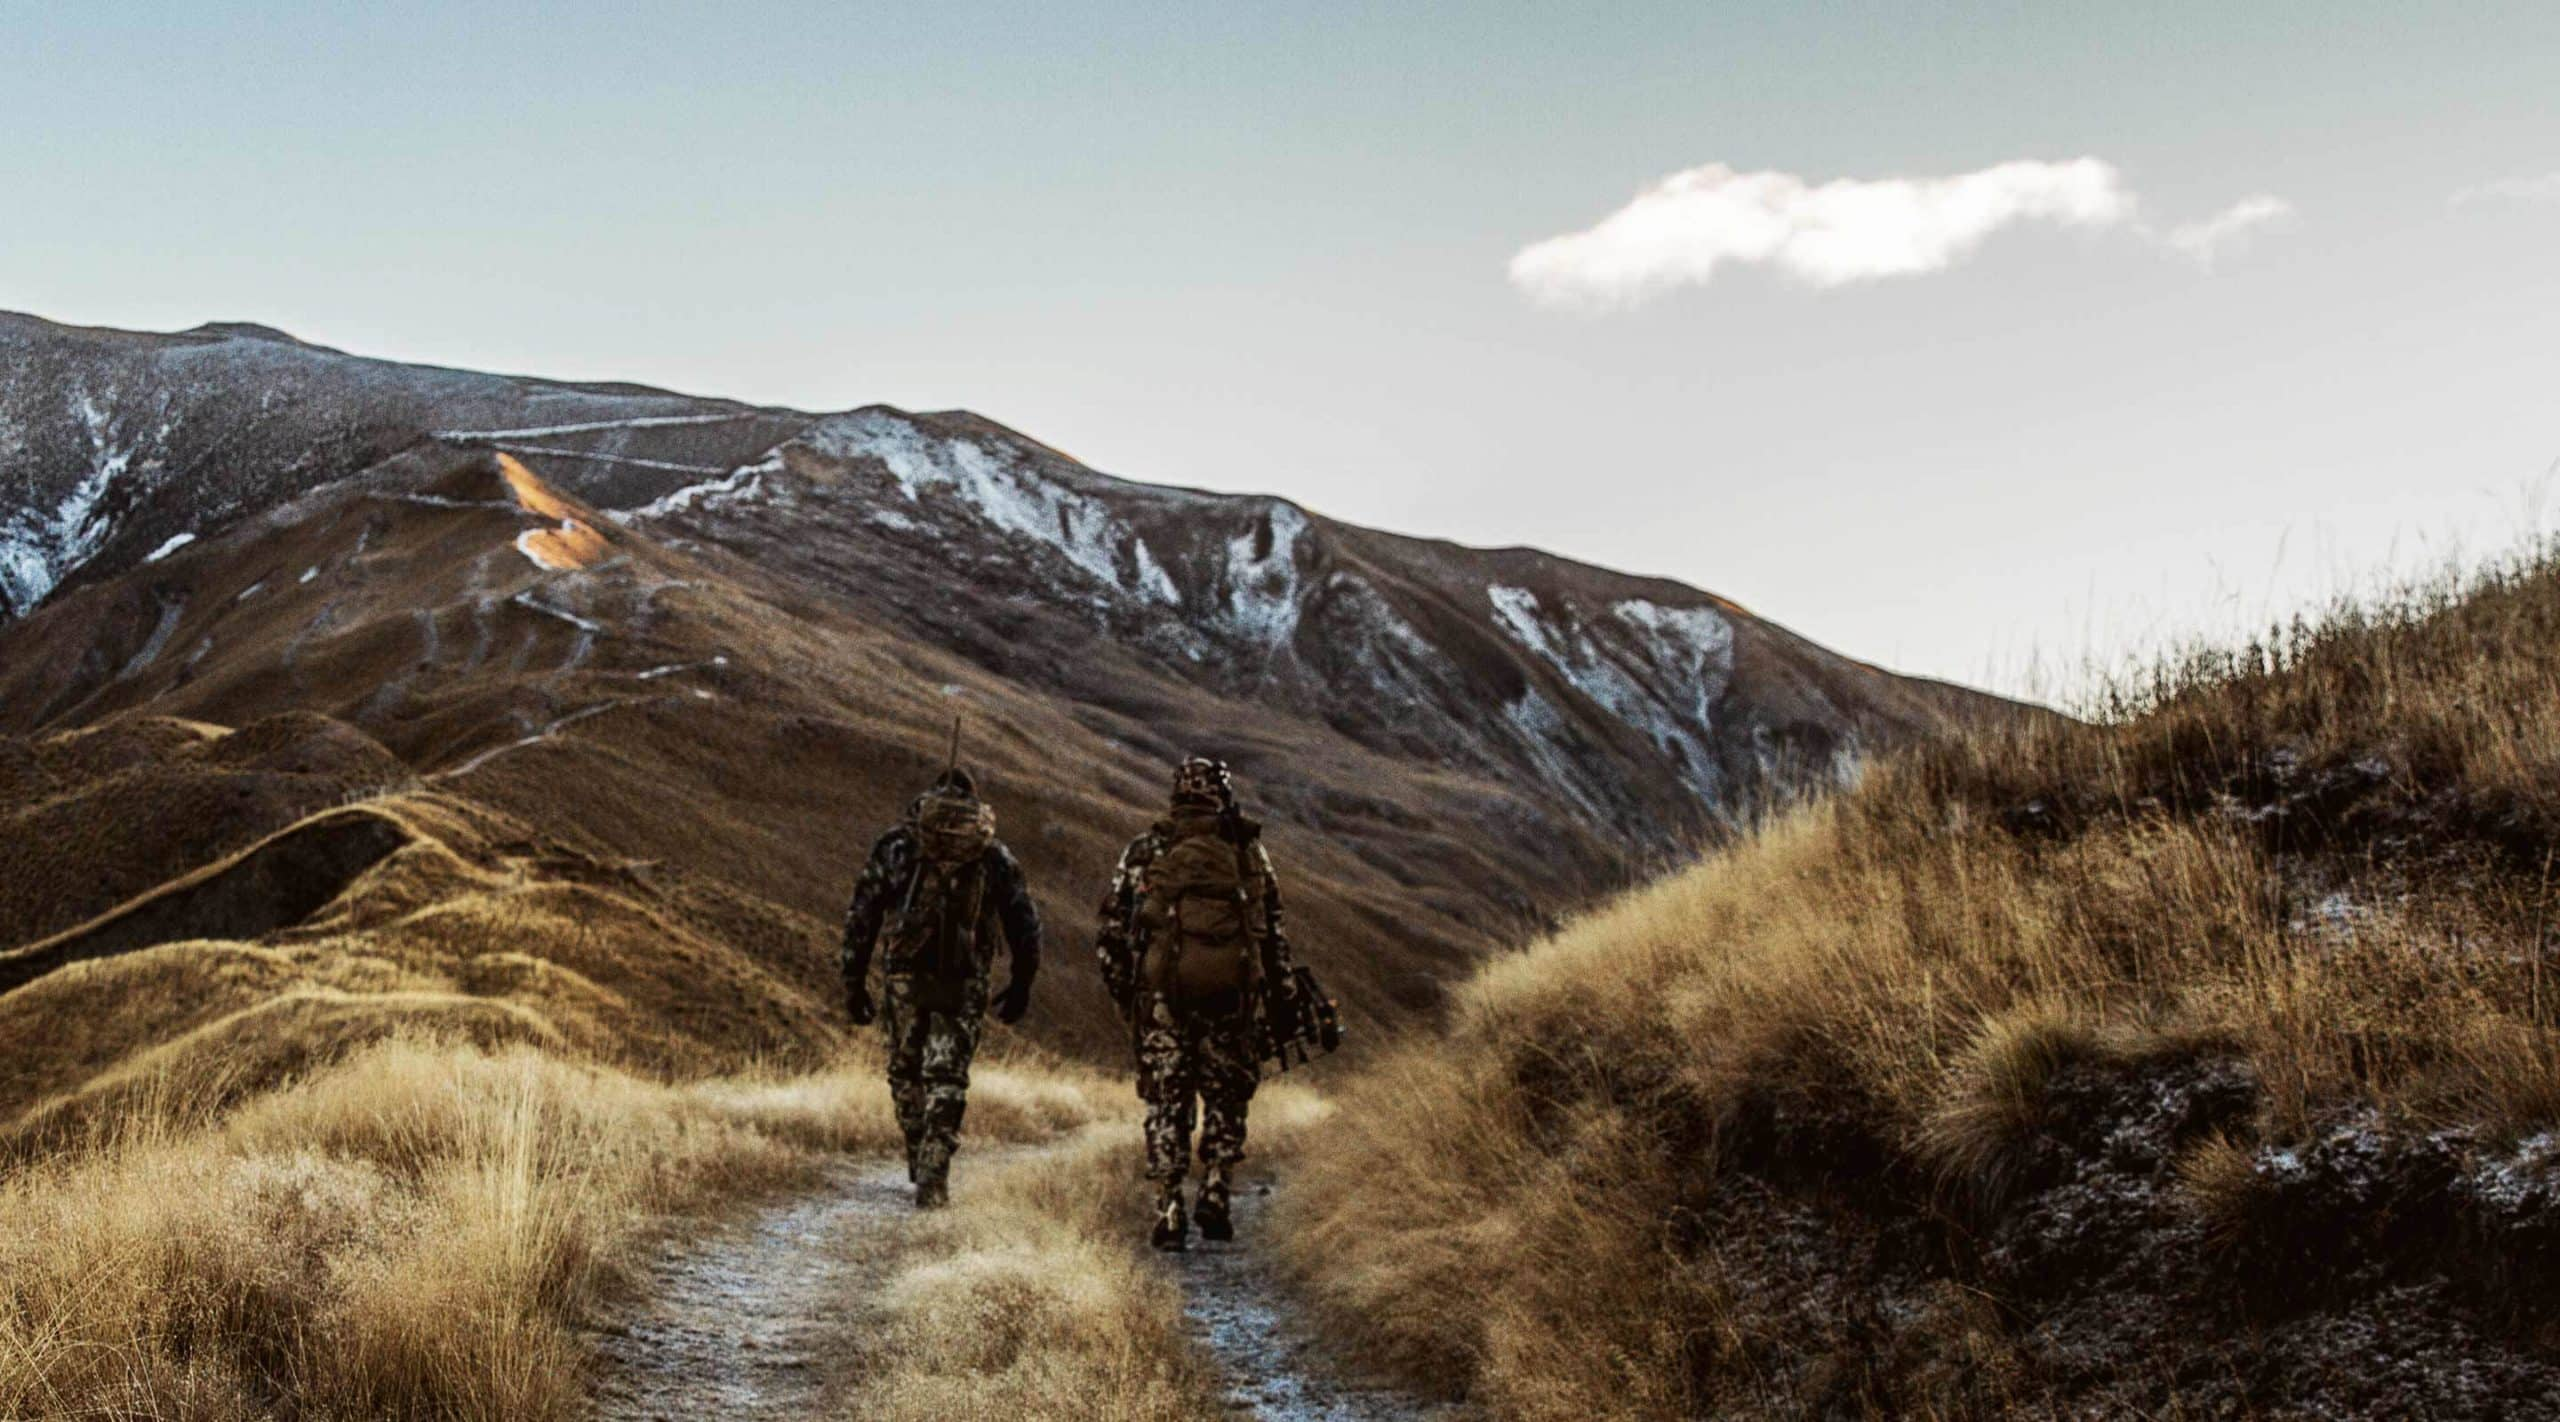 Two men in camouflage walk into the mountains in morning to hunt.